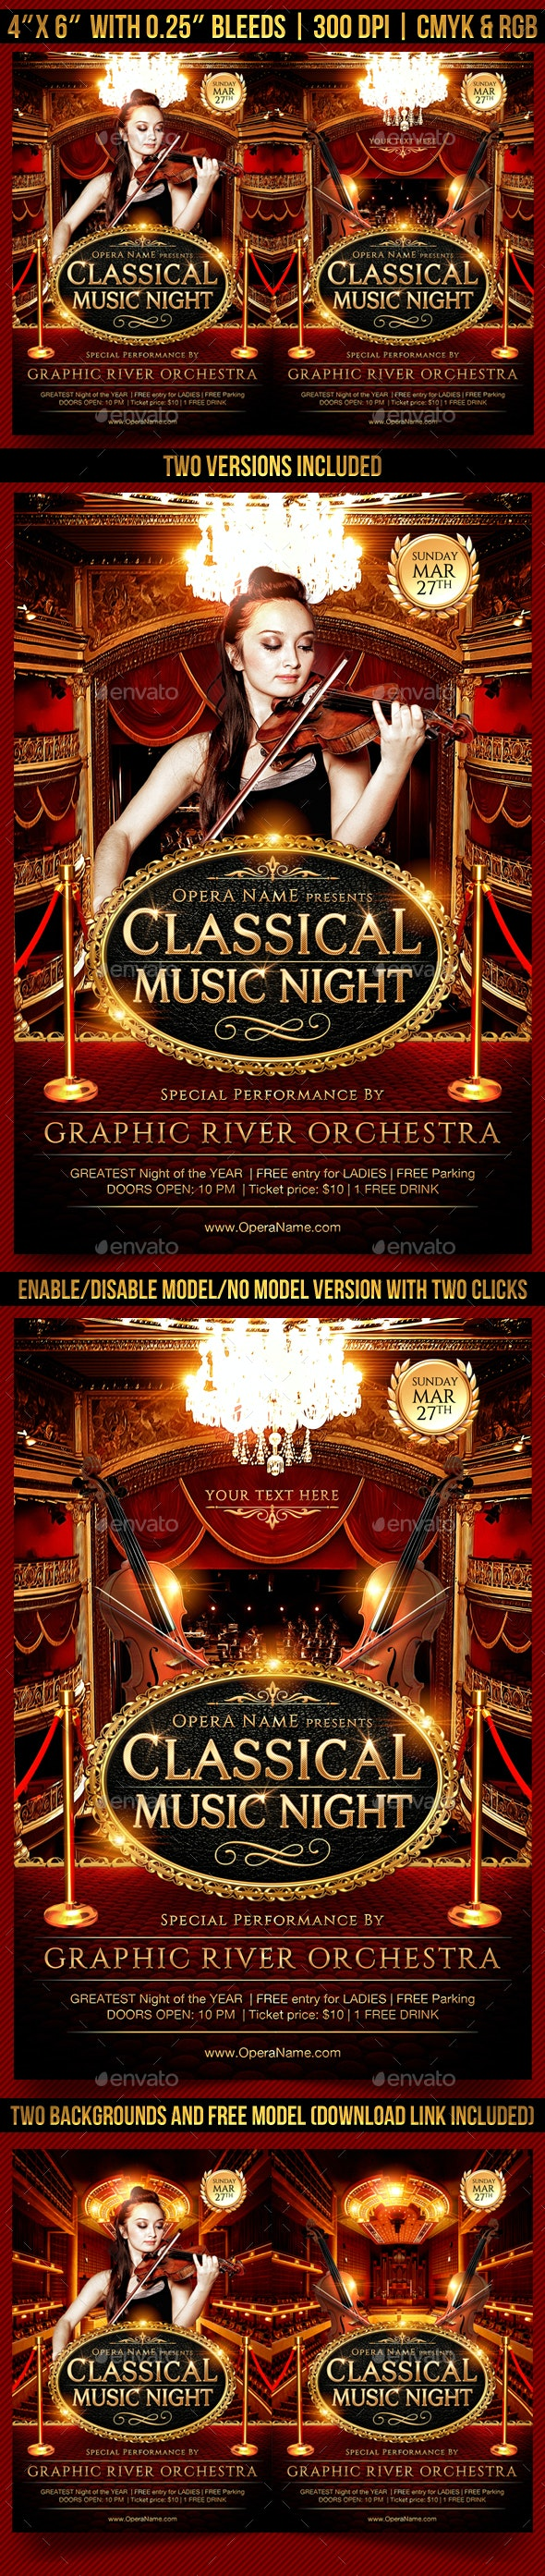 Classical Music Night Flyer Template - Events Flyers